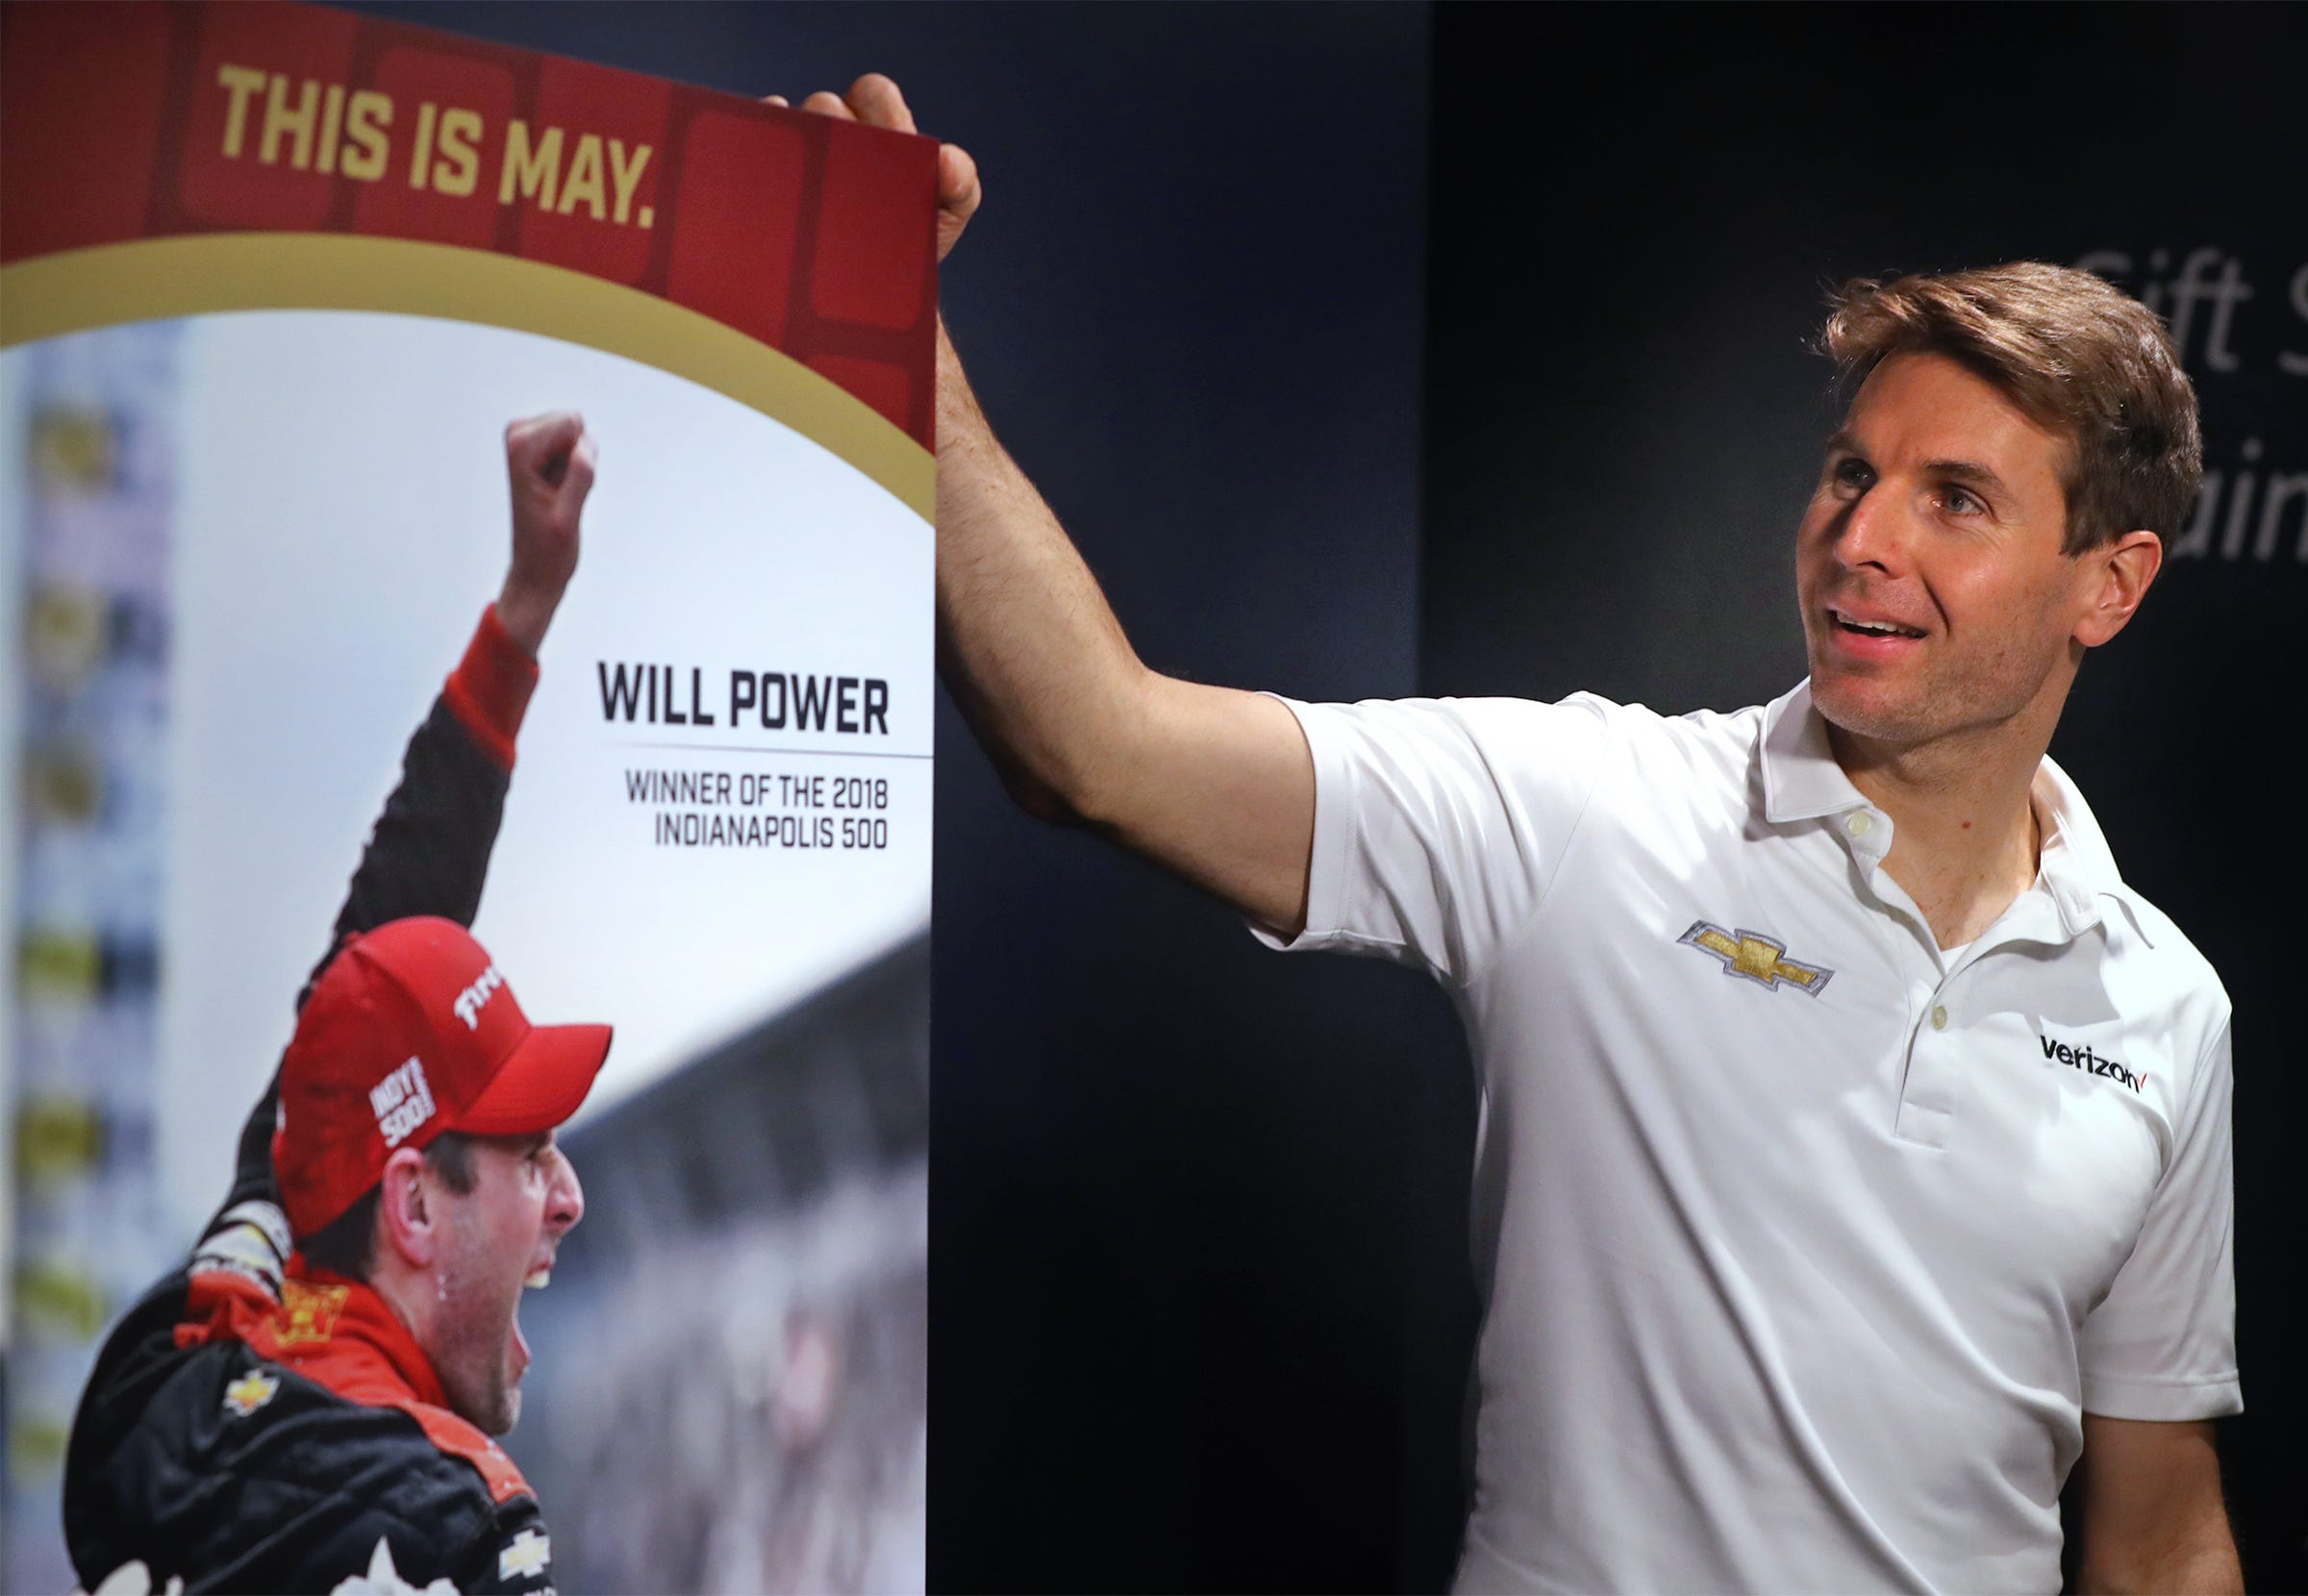 02e92e819a1927 ... champion Will Power still reveling in Indy 500 victory with ticket  unveiling. Indianapolis Star - 17 13 PM ET January 28